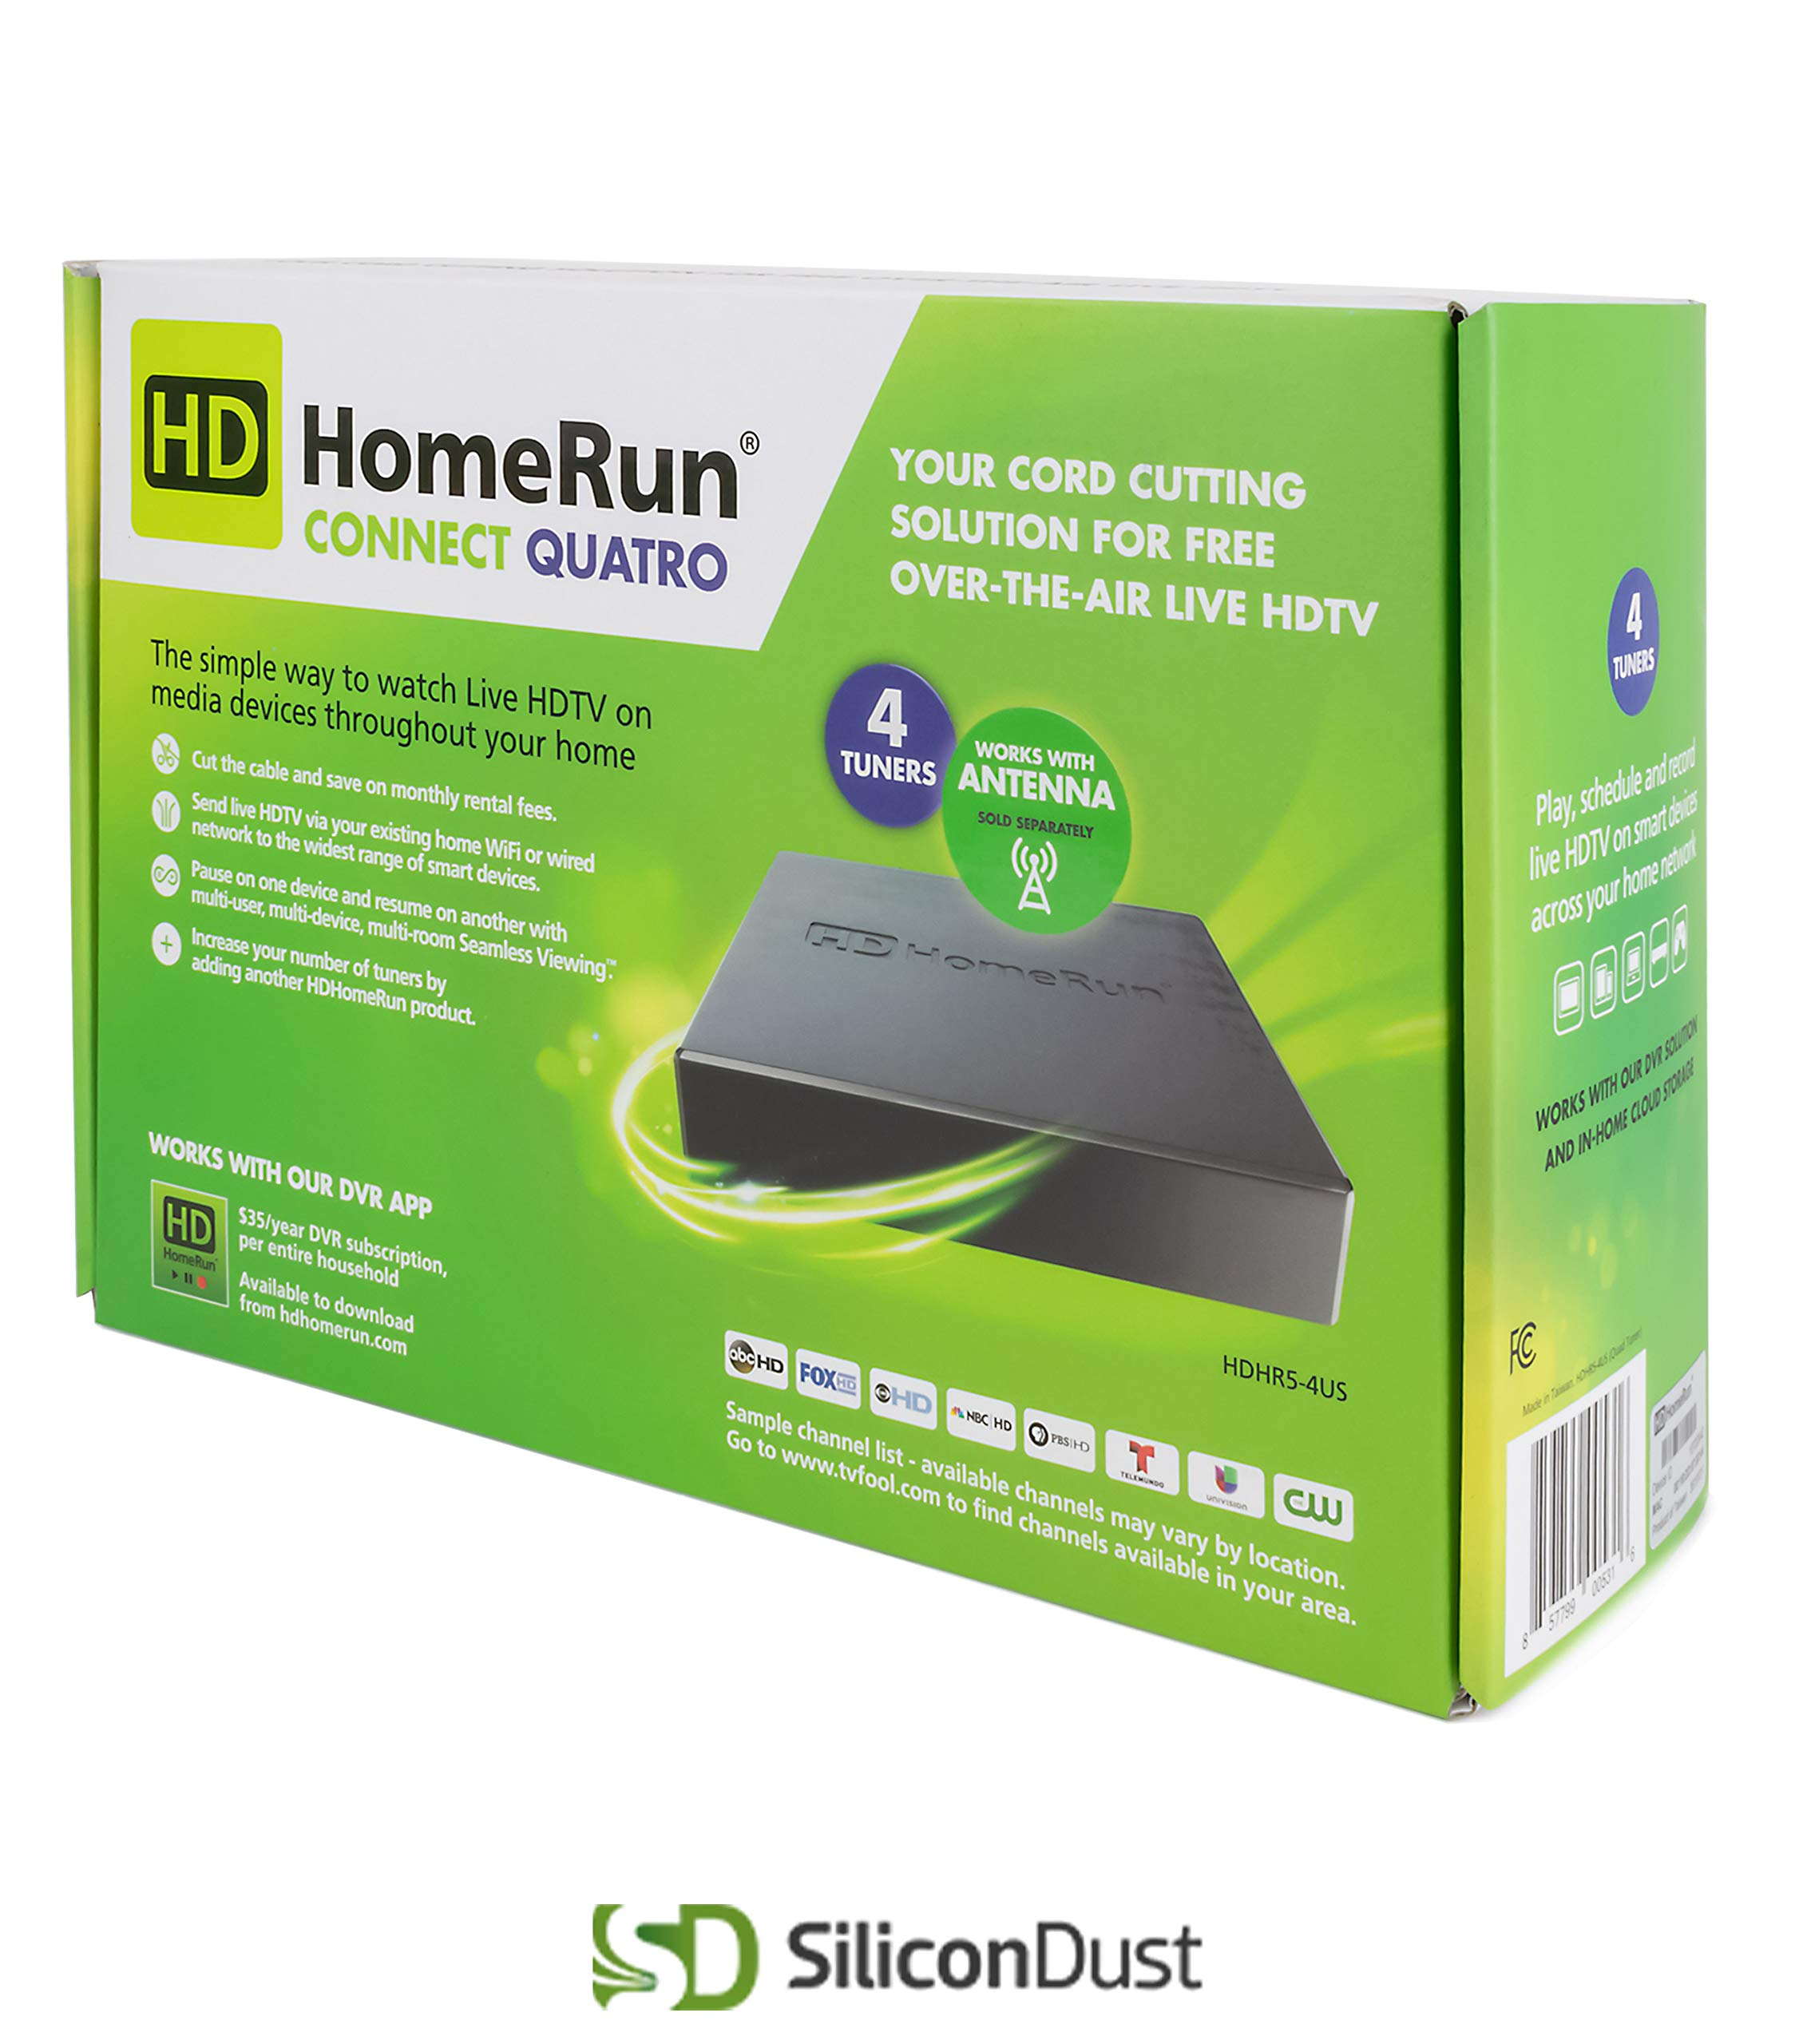 SiliconDust HDHR5-4US HDHomeRun Connect Quatro 4-Tuner Live TV for Cord Cutters (Renewed) by SiliconDust